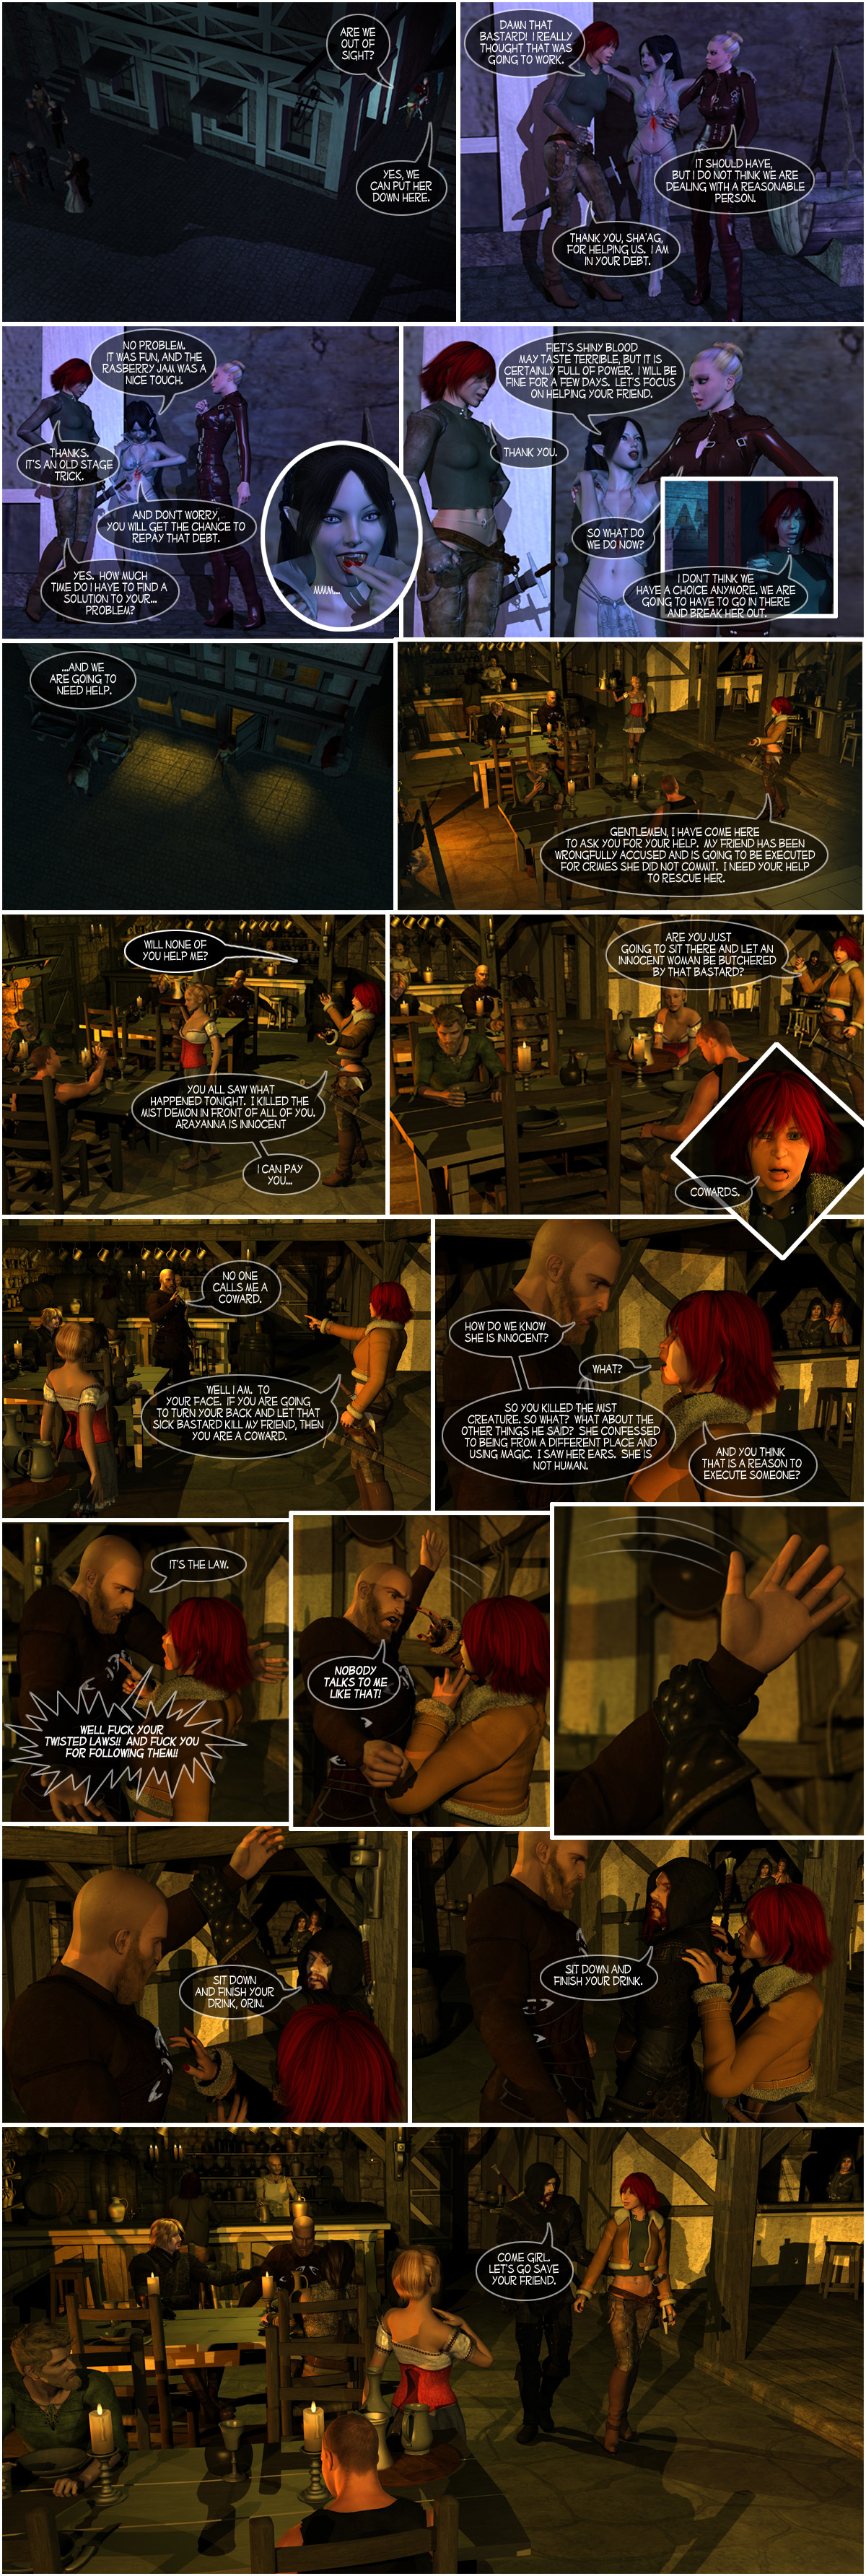 Book 1, Chapter 4, Page 15